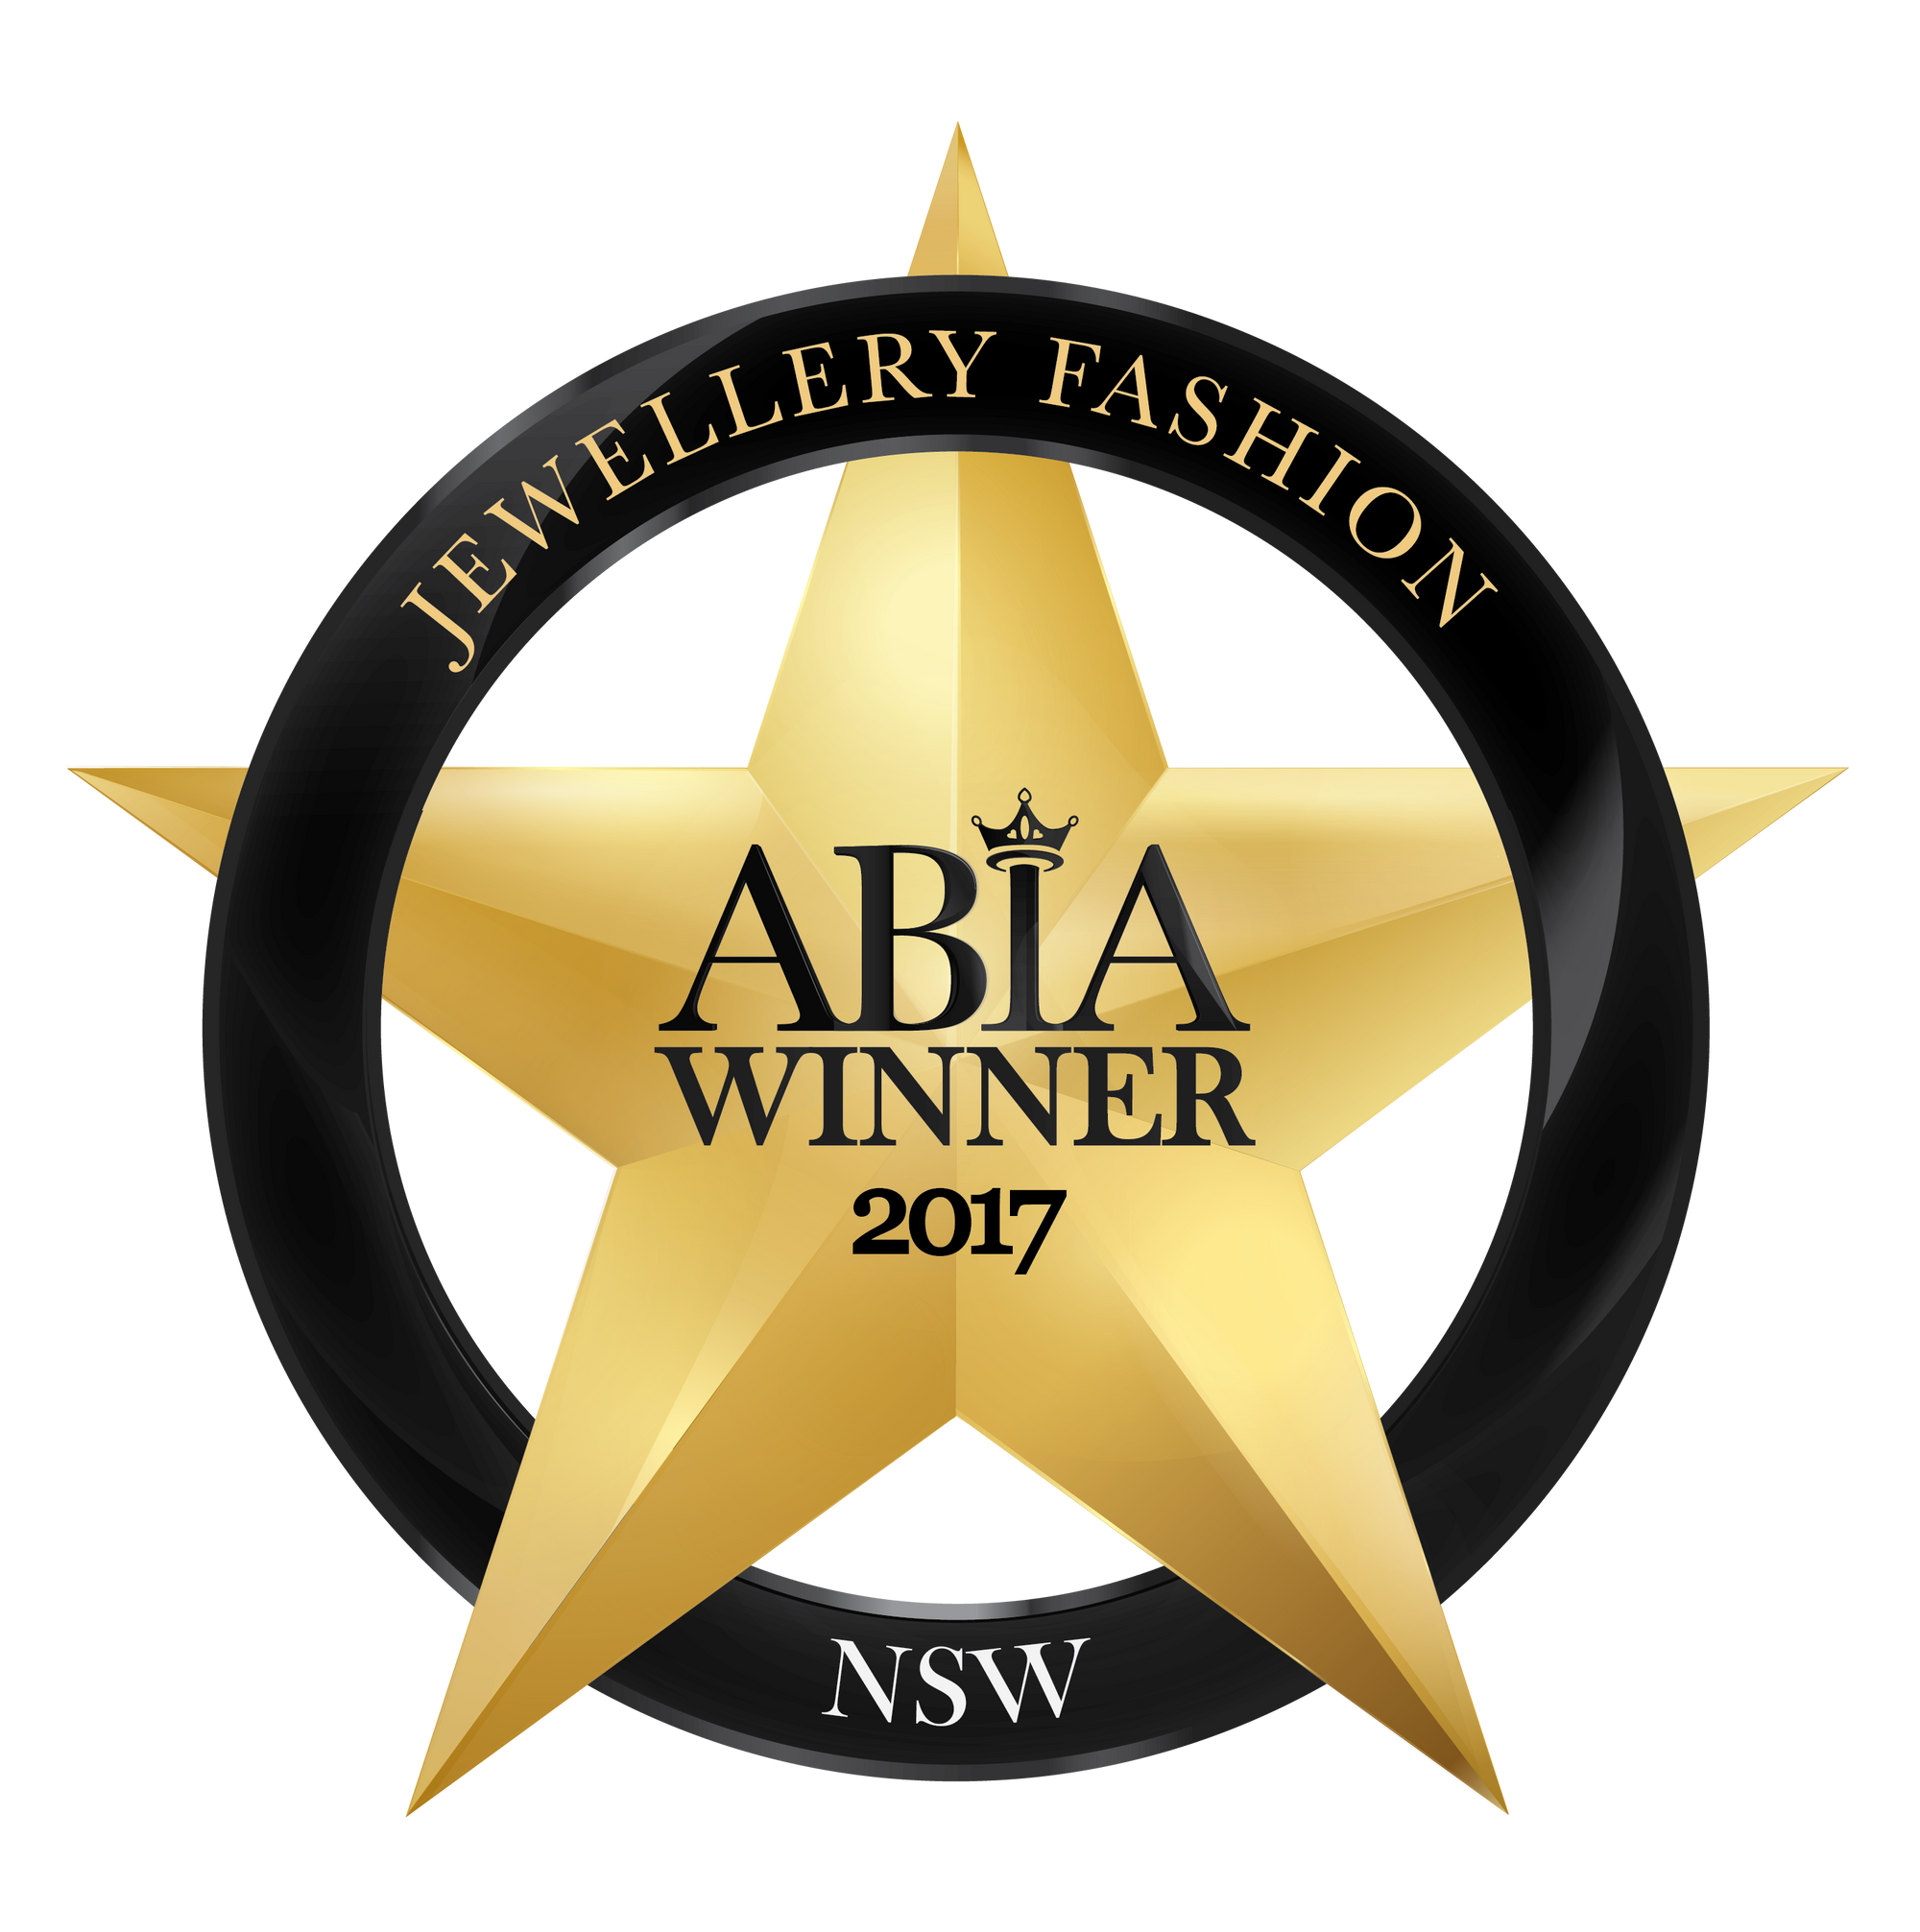 ABIA Winner 2017 Jewellery Fashion